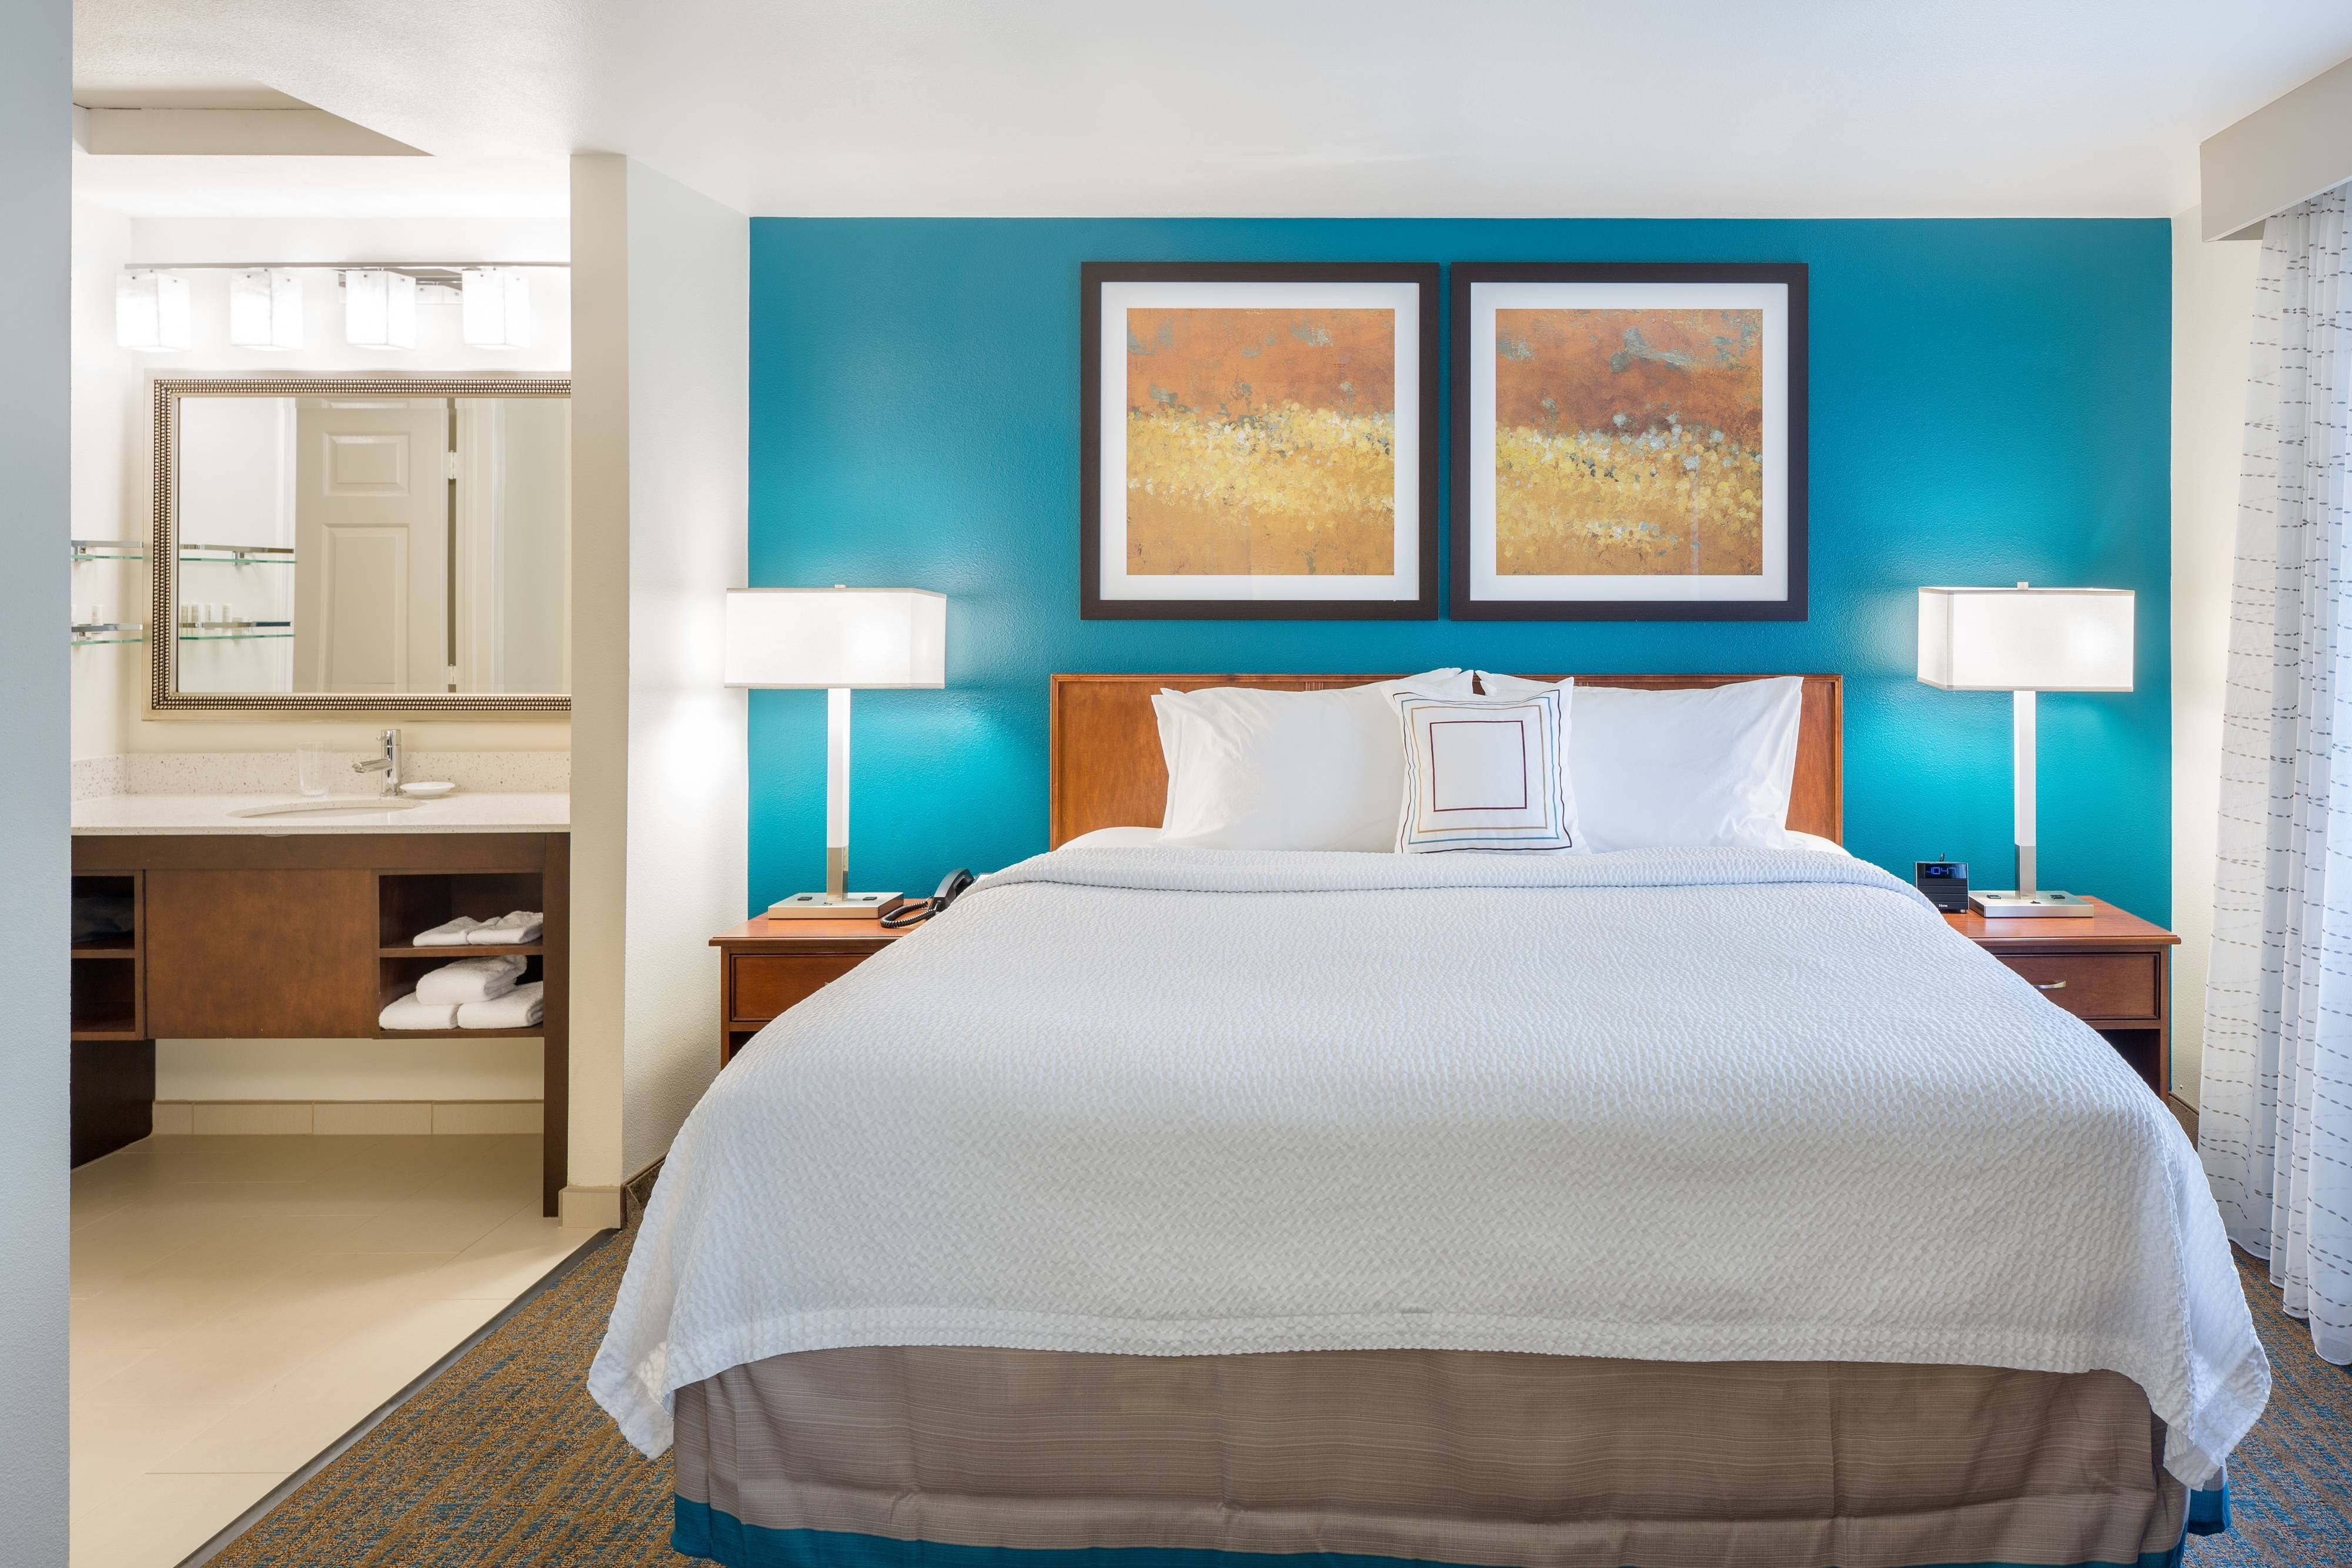 Marriott Residence Inn Hillsboro studio suite